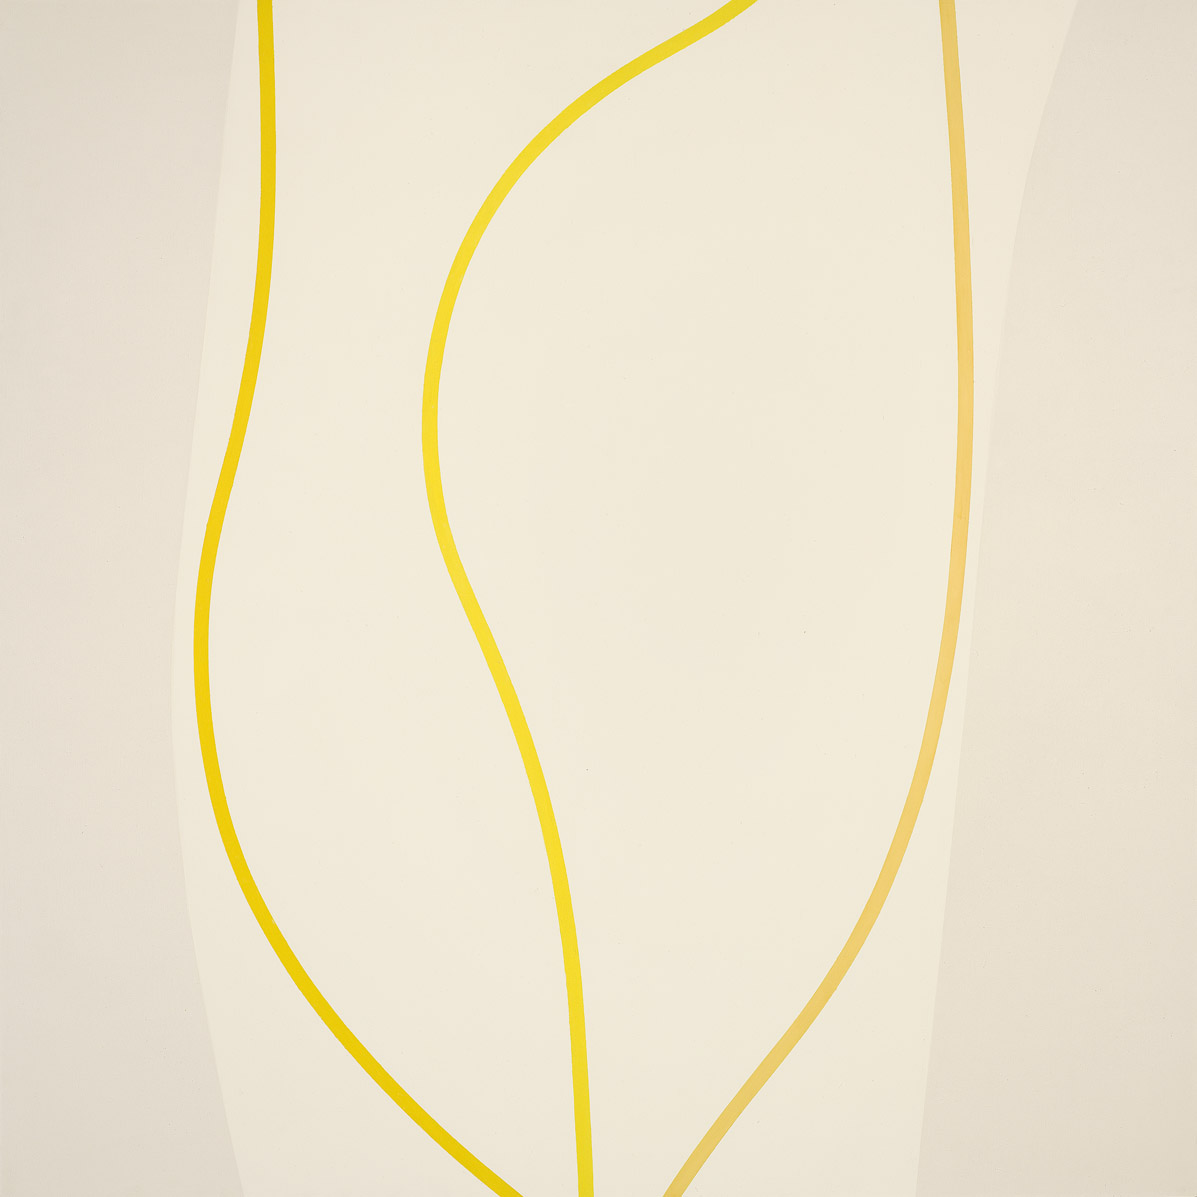 Untitled (September 22) , 1964  acrylic on canvas 60 x 60 inches; 152.4 x 152.4 centimeters